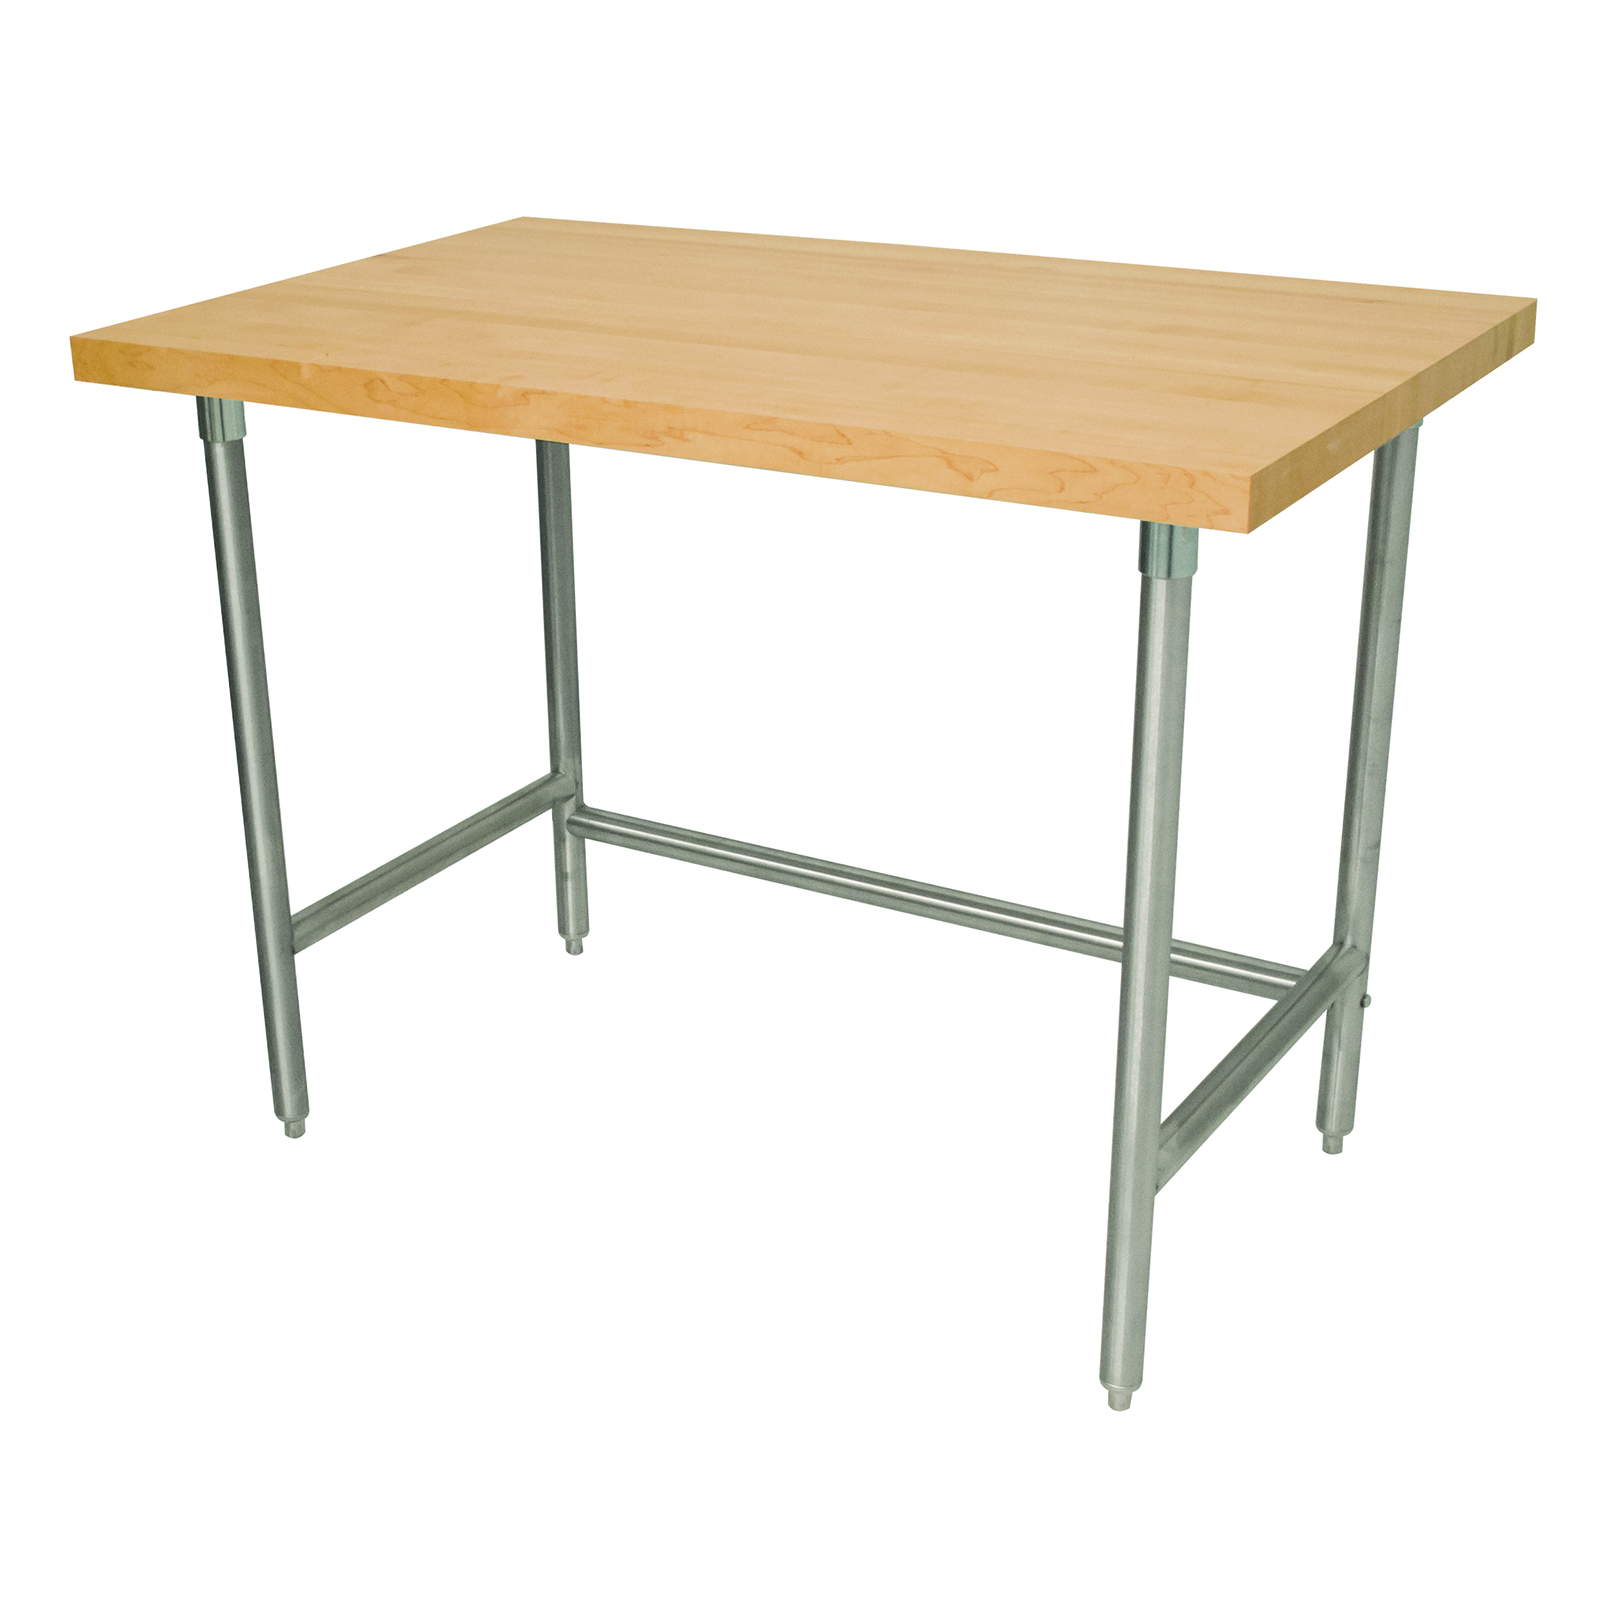 Advance Tabco TH2S-247 work table, wood top